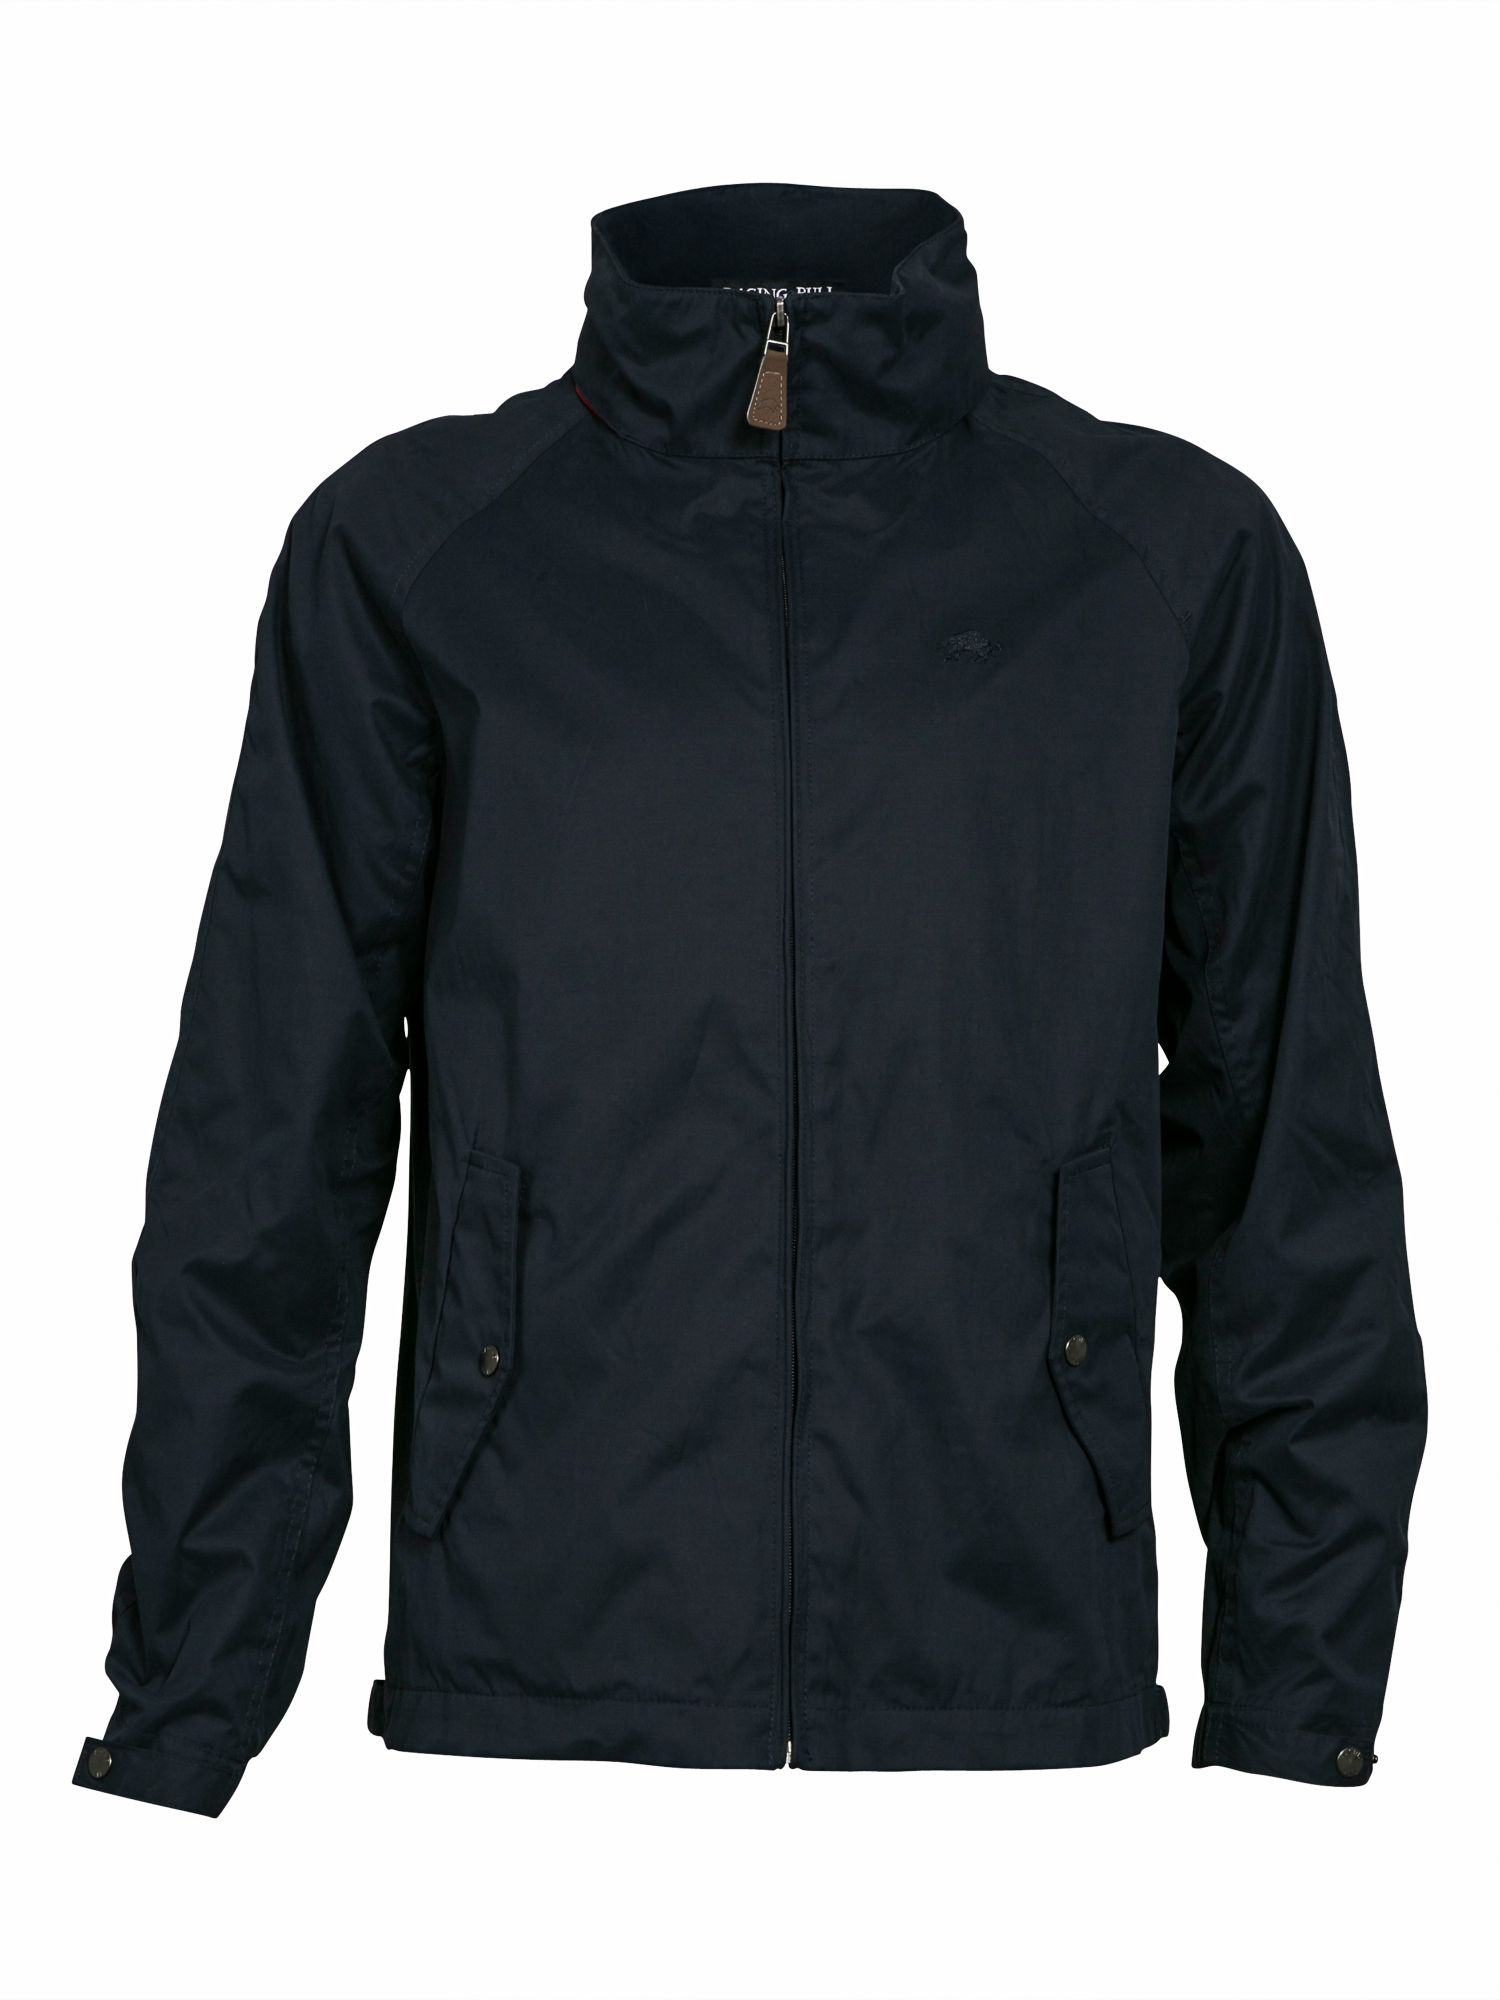 Casual waterproof zip jacket